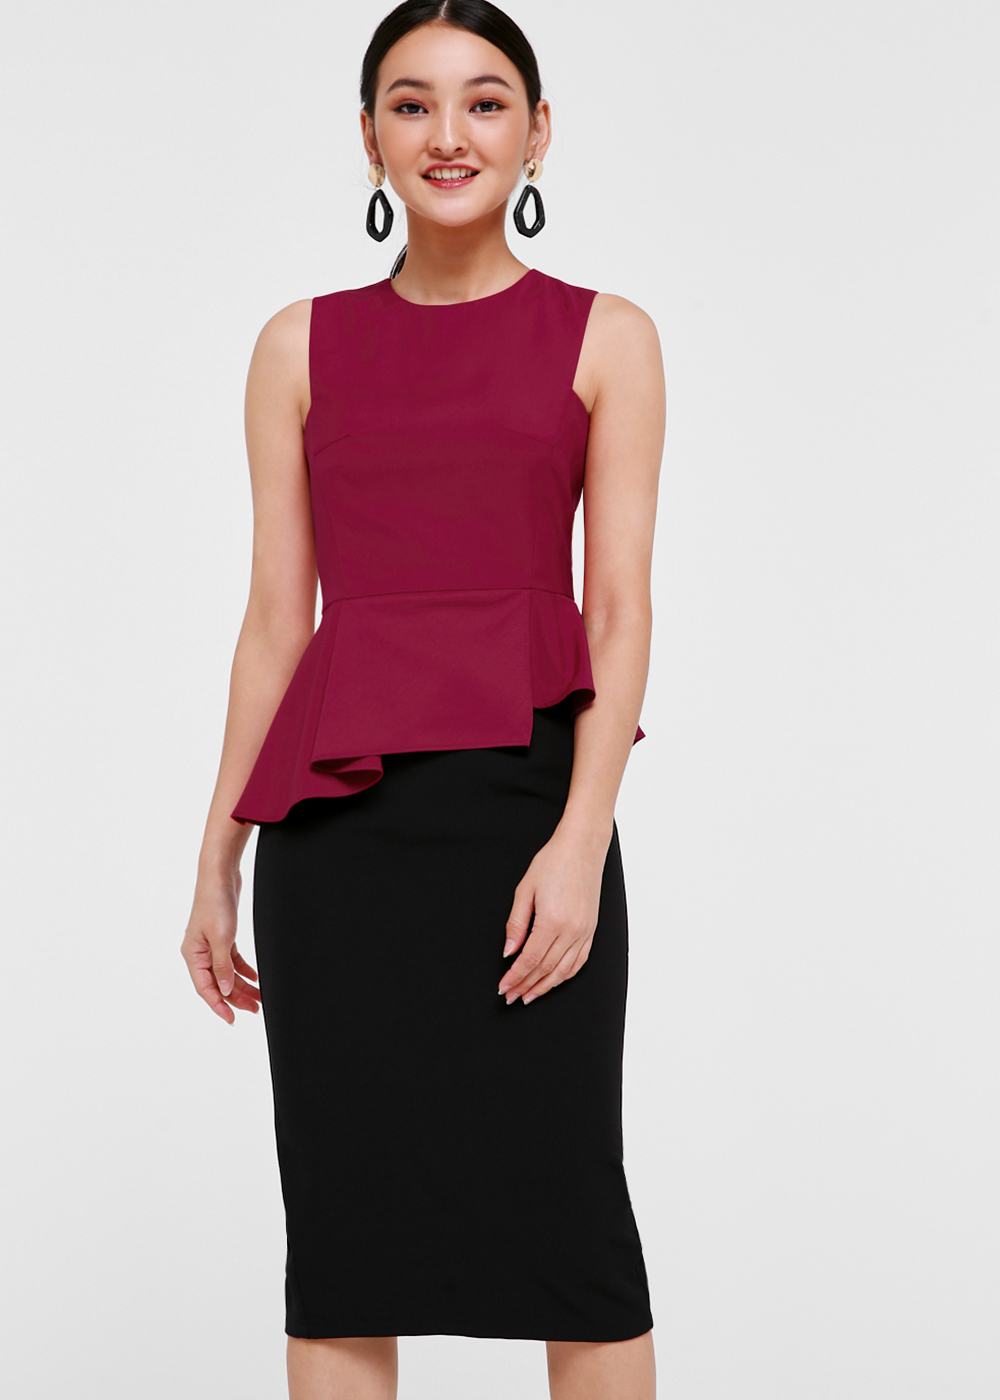 Arie Sleeveless Peplum Top